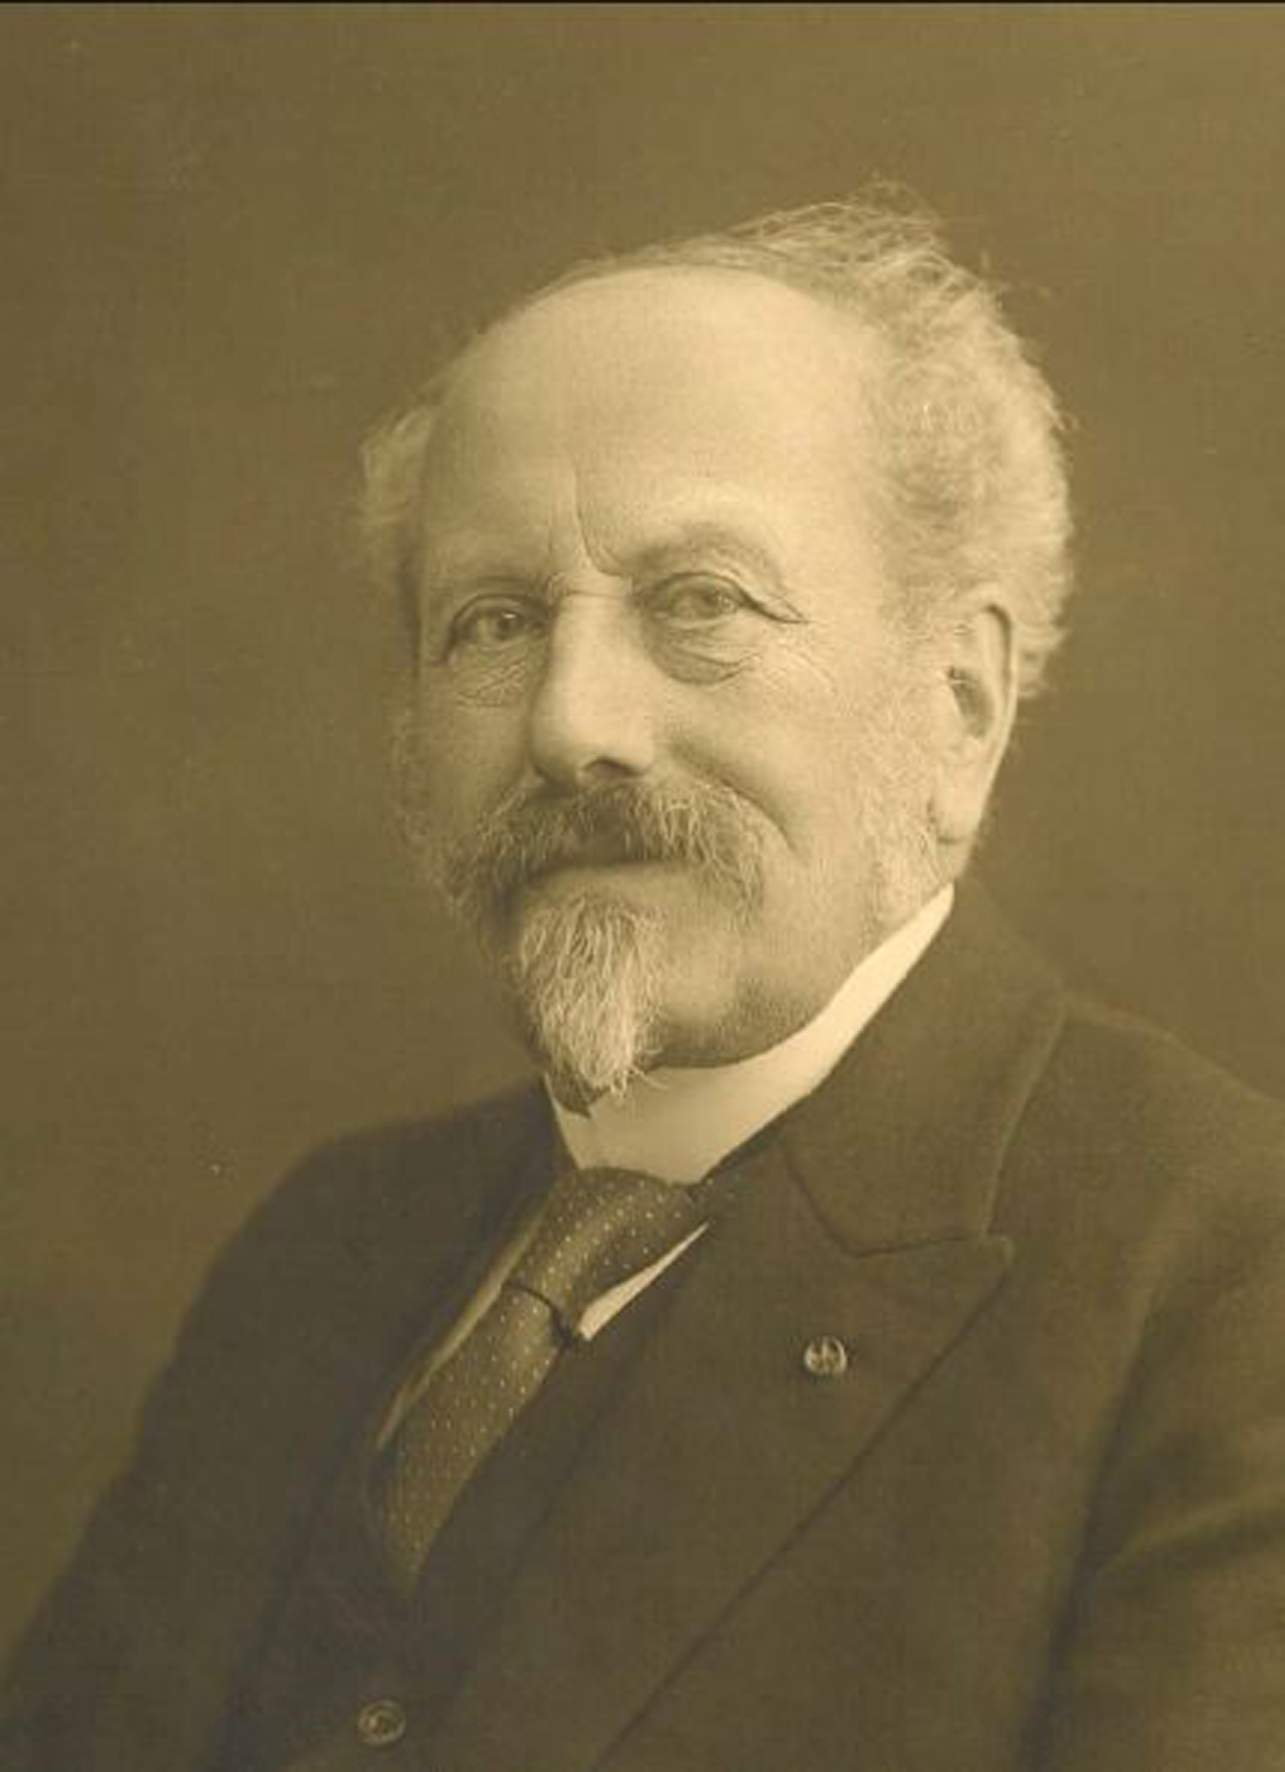 Dr Cornelis Lely (1854-1929), the creator of the Zuiderzee project.